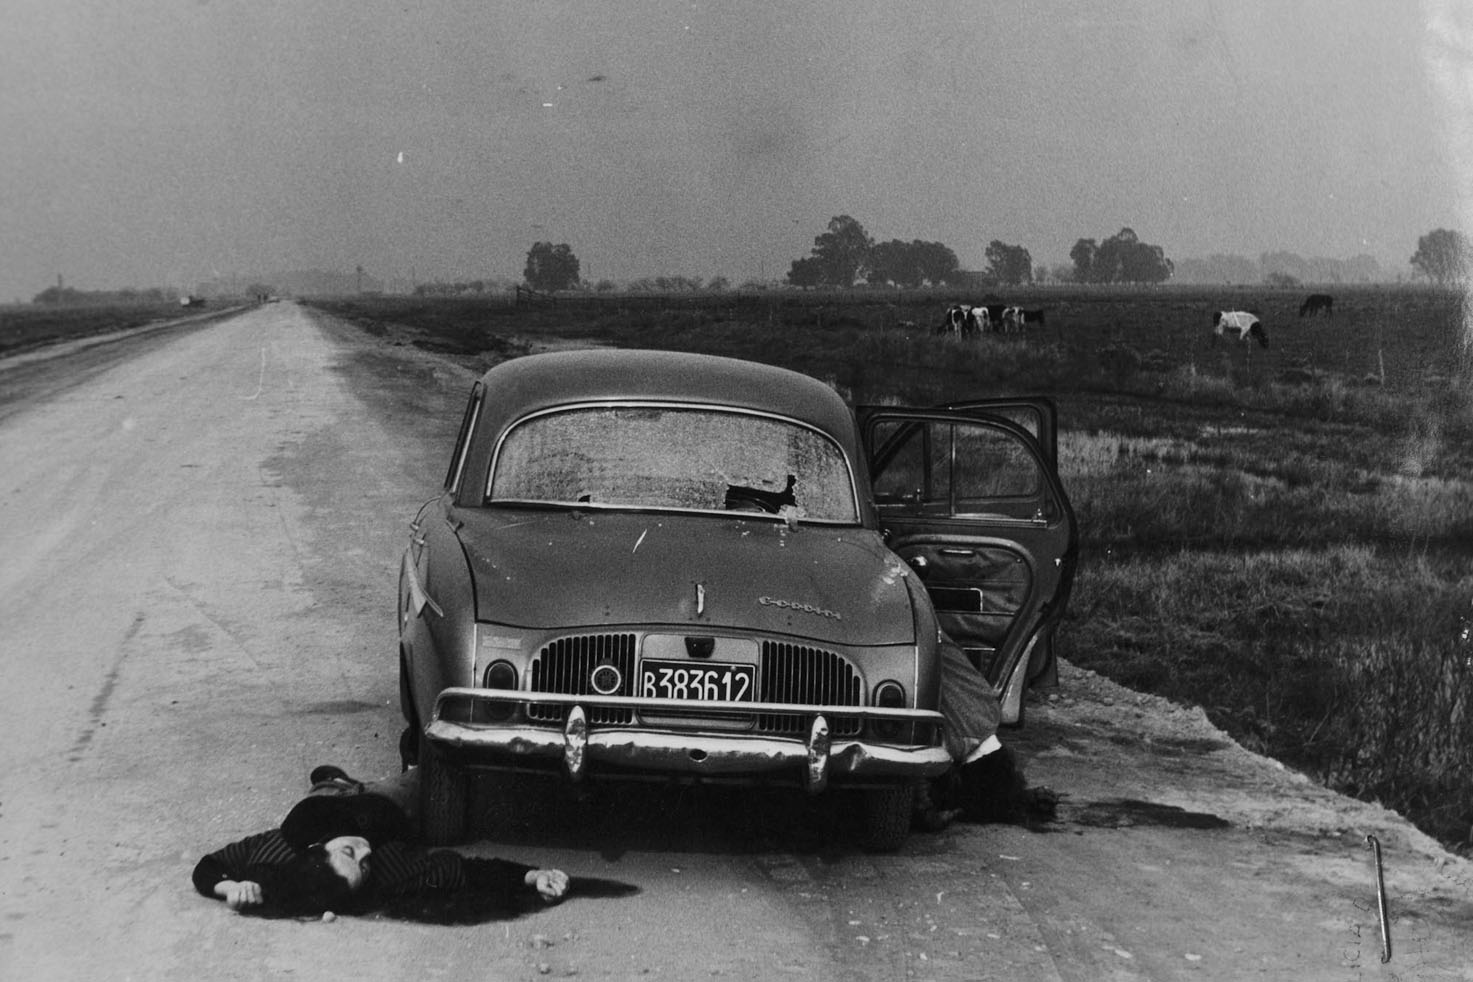 A woman lays dead on the side of the road after the car she was in was shot by right-wing paramilitary forces known as Triple A (Argentine Anti-communist Alliance) on the outskirts of La Plata, Argentina.